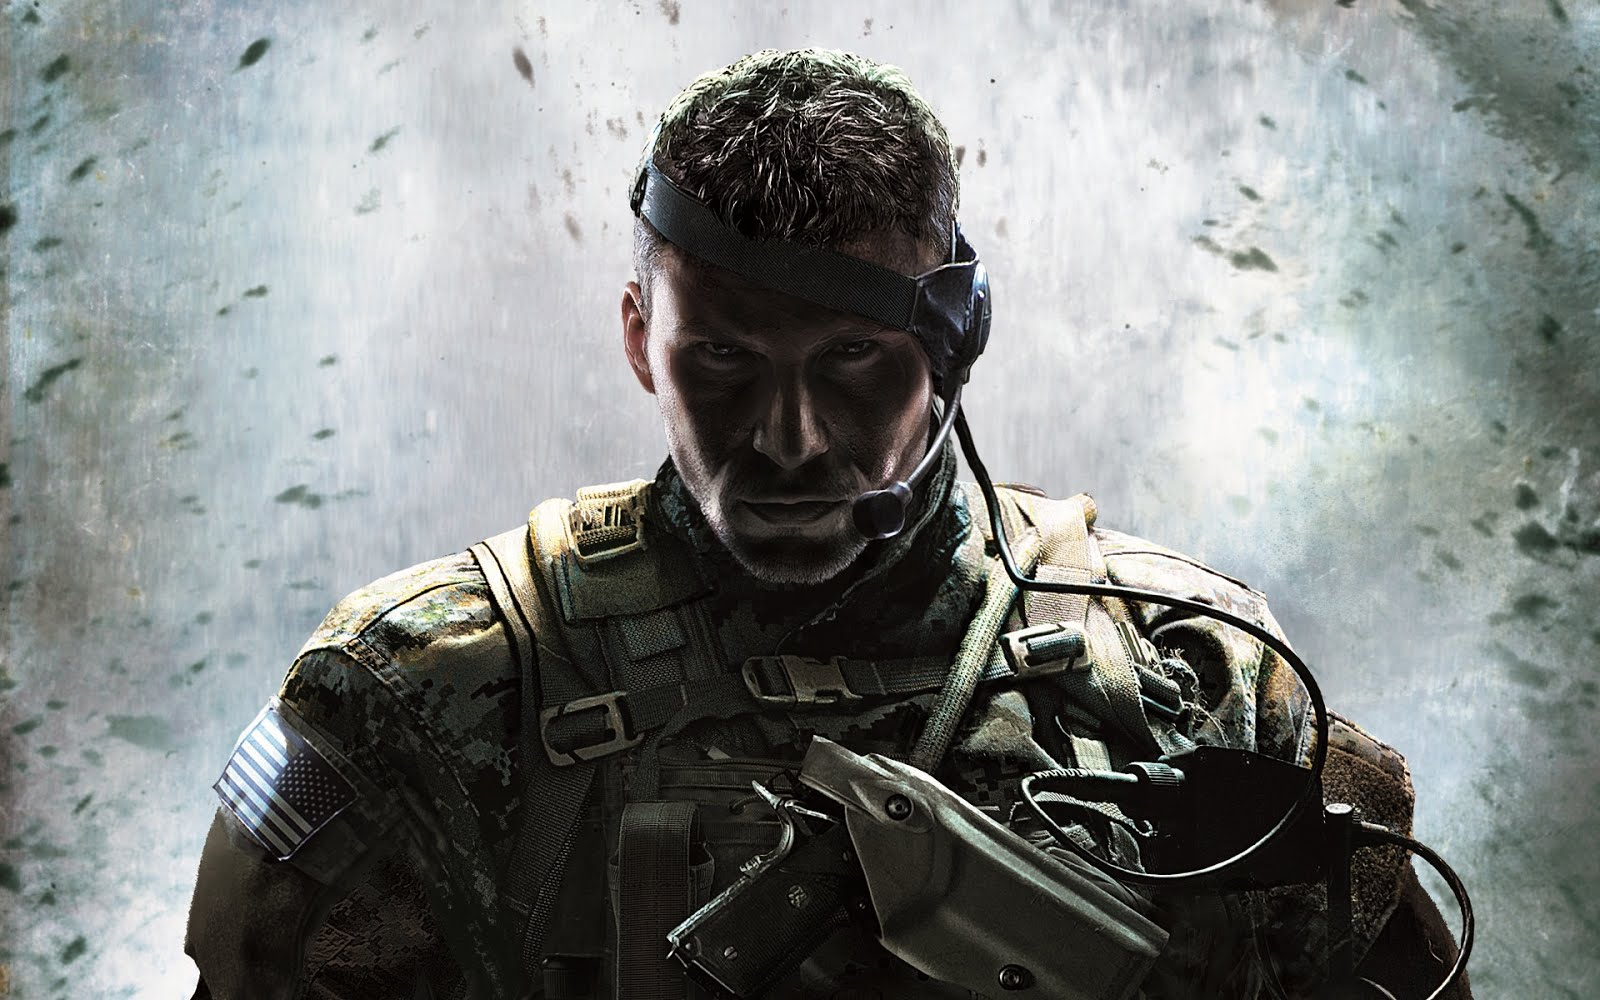 Sniper Ghost Warrior 2 (2013) Game HD Wallpapers